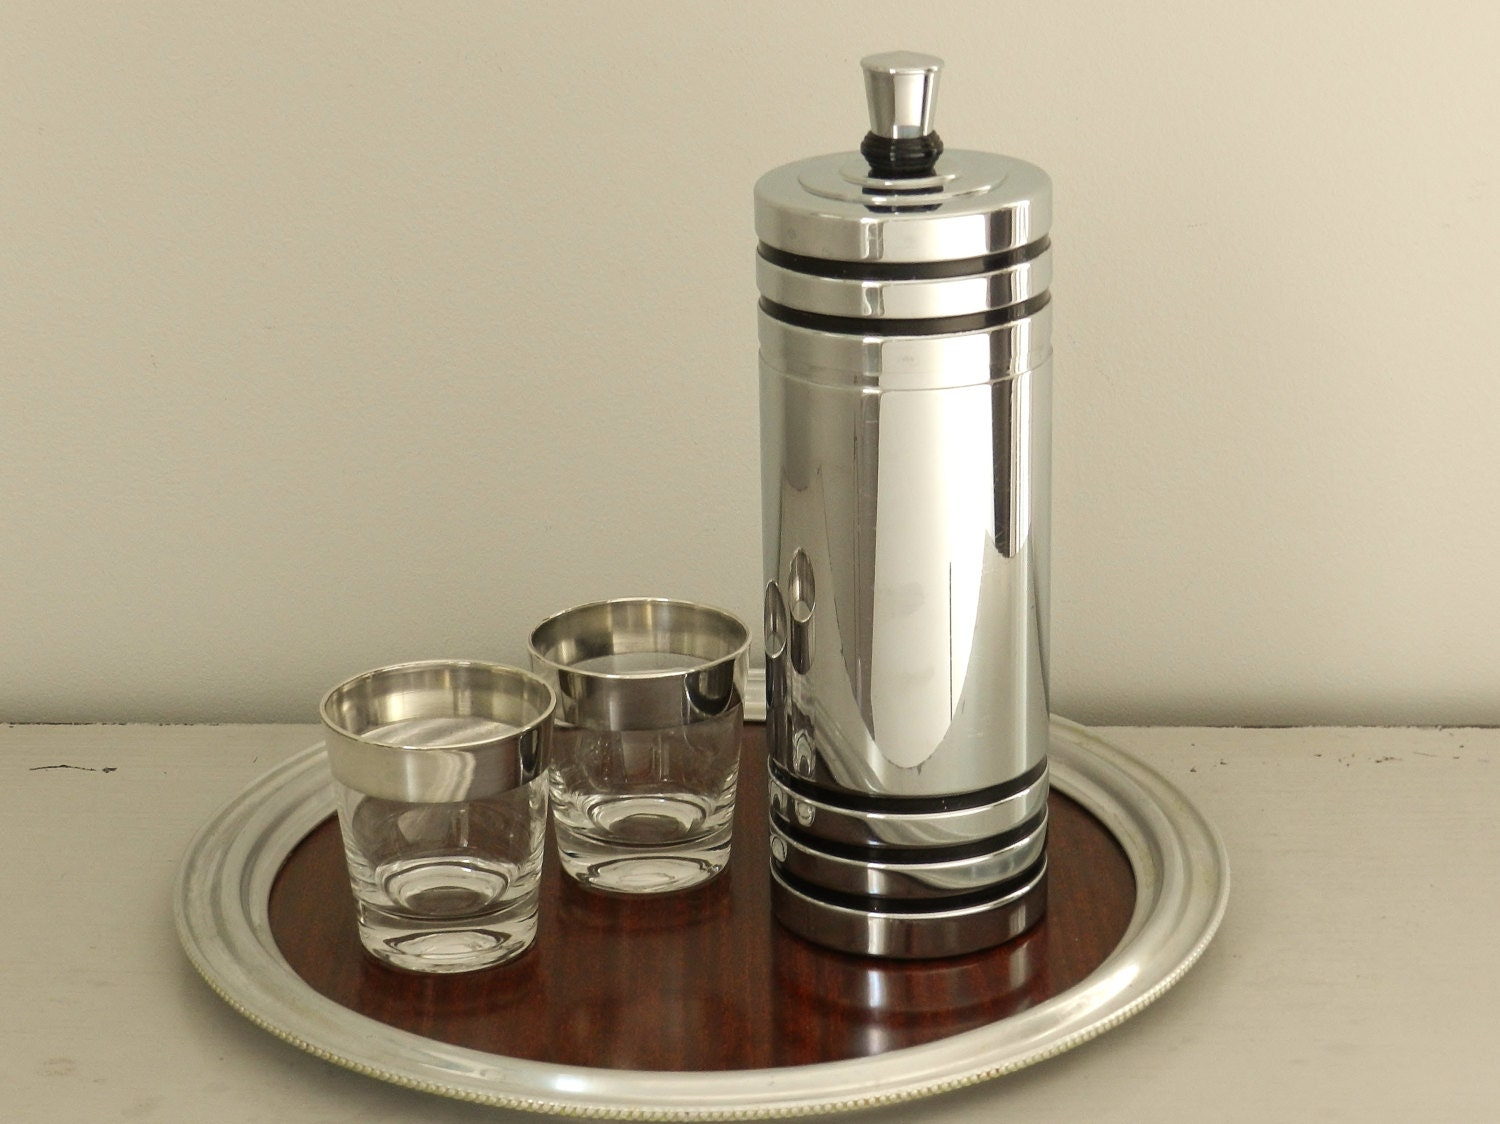 Vintage Chase Cocktail Martini Shaker 1930s Art Deco Decor